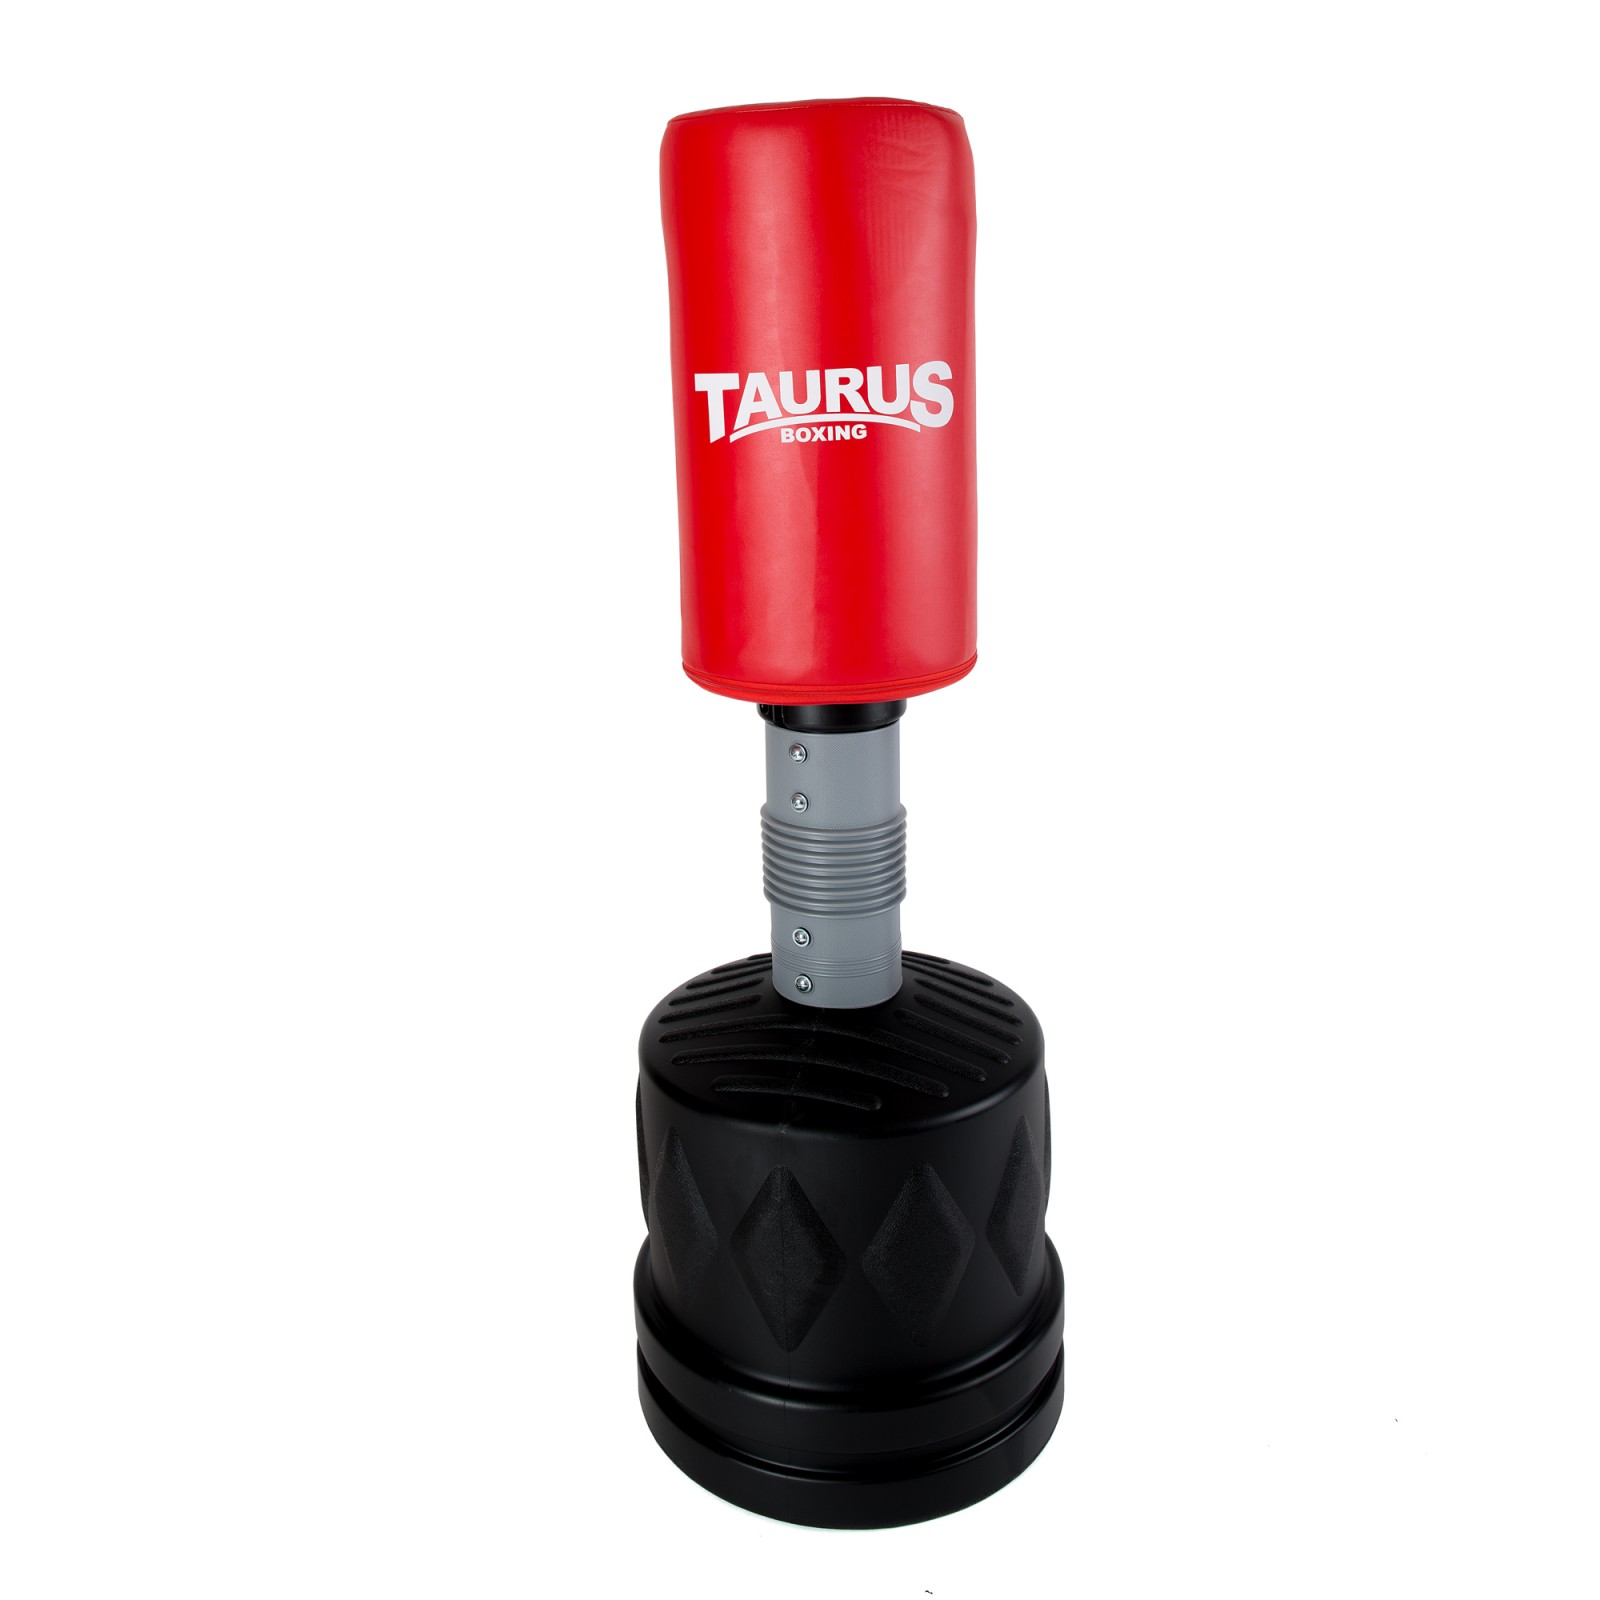 taurus free standing punching bag heavy buy with 39. Black Bedroom Furniture Sets. Home Design Ideas